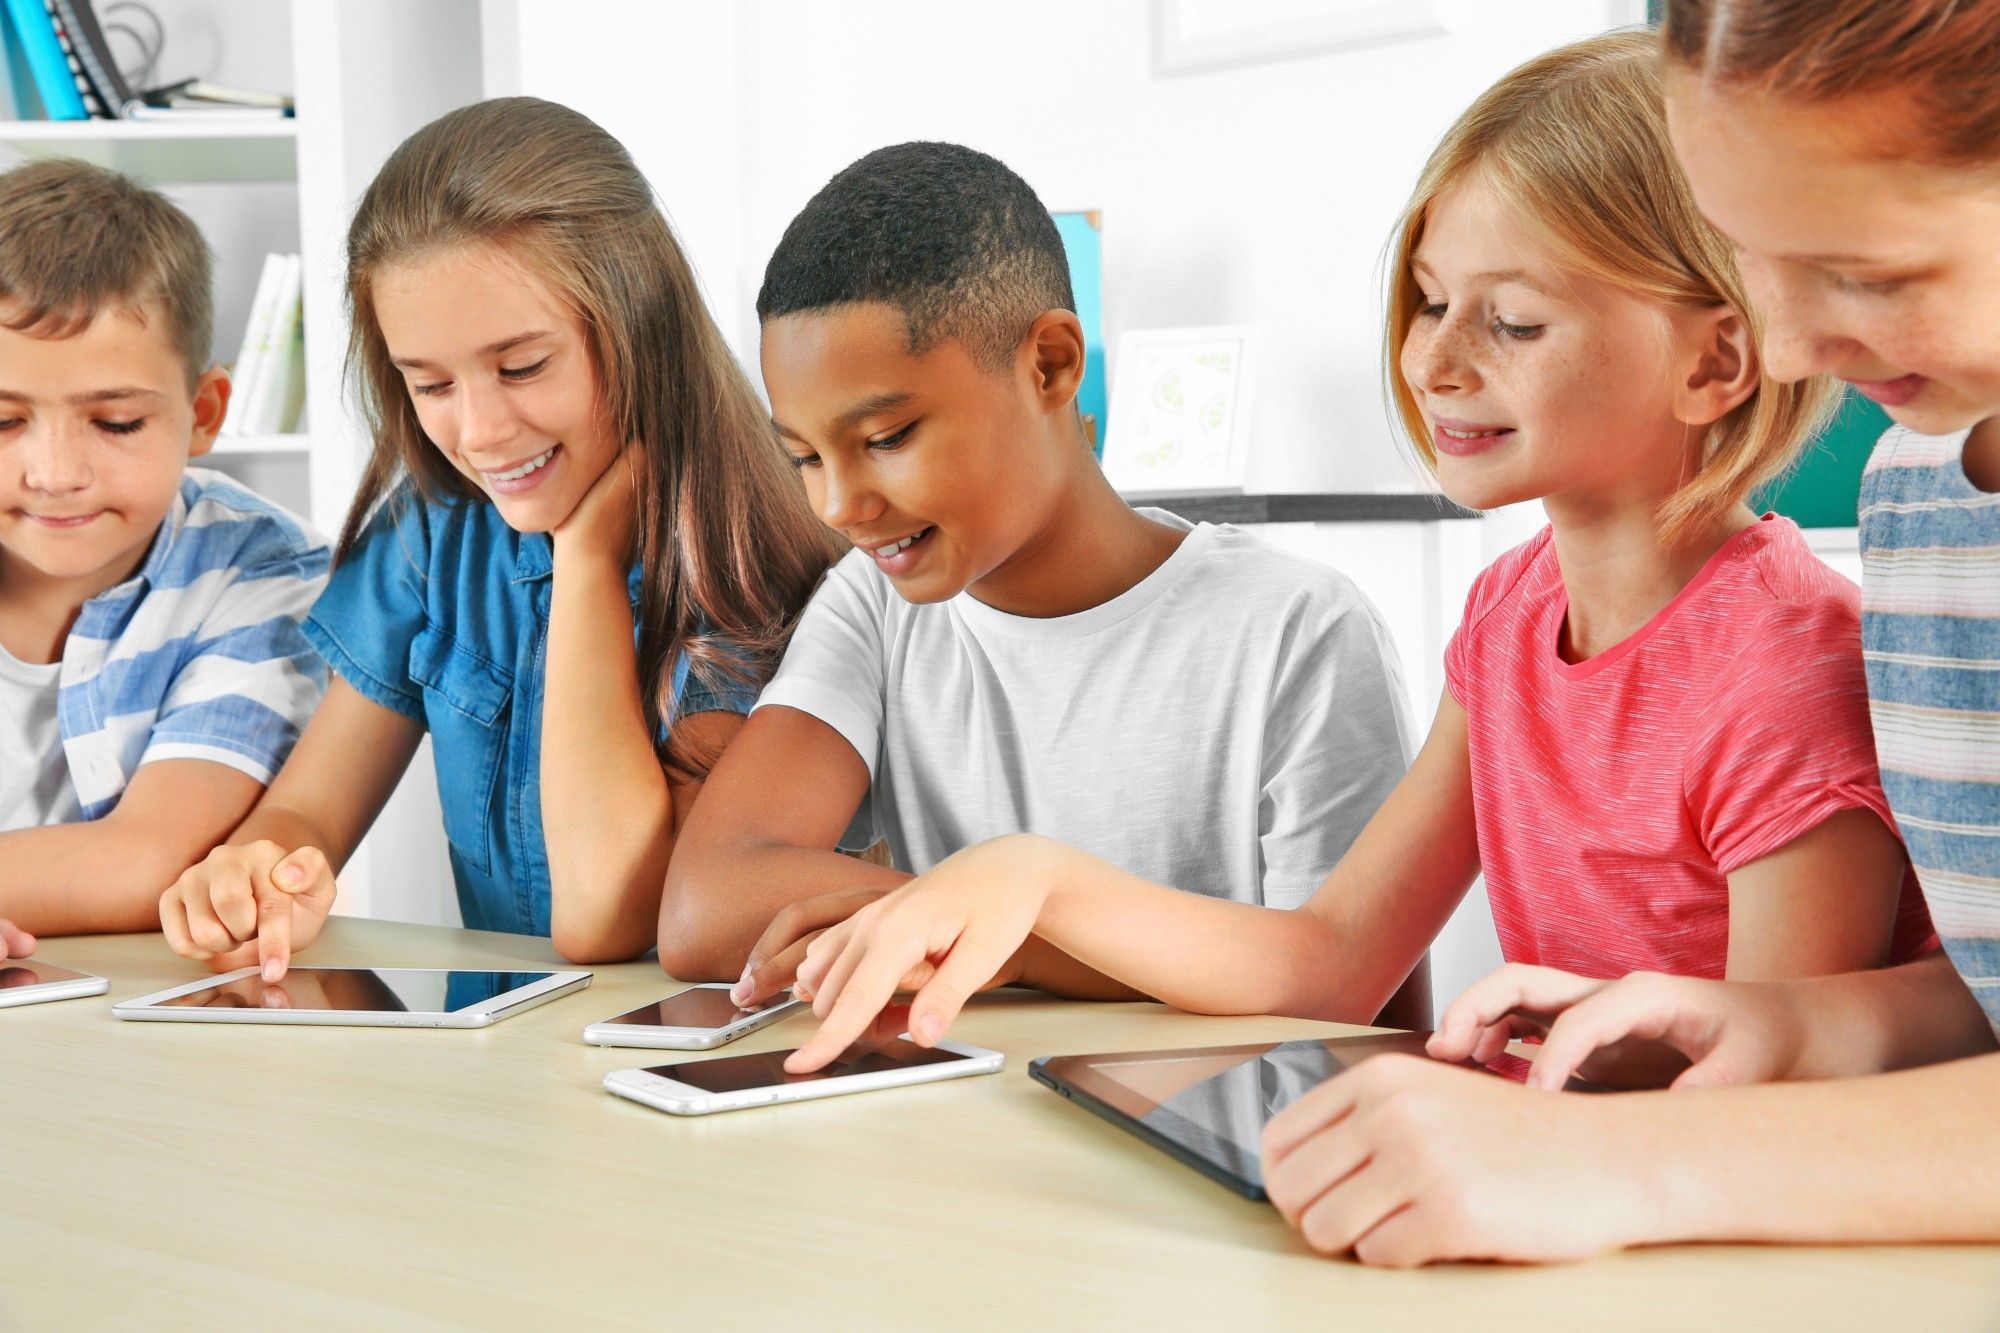 children How to Protect Your Child from Identity Theft